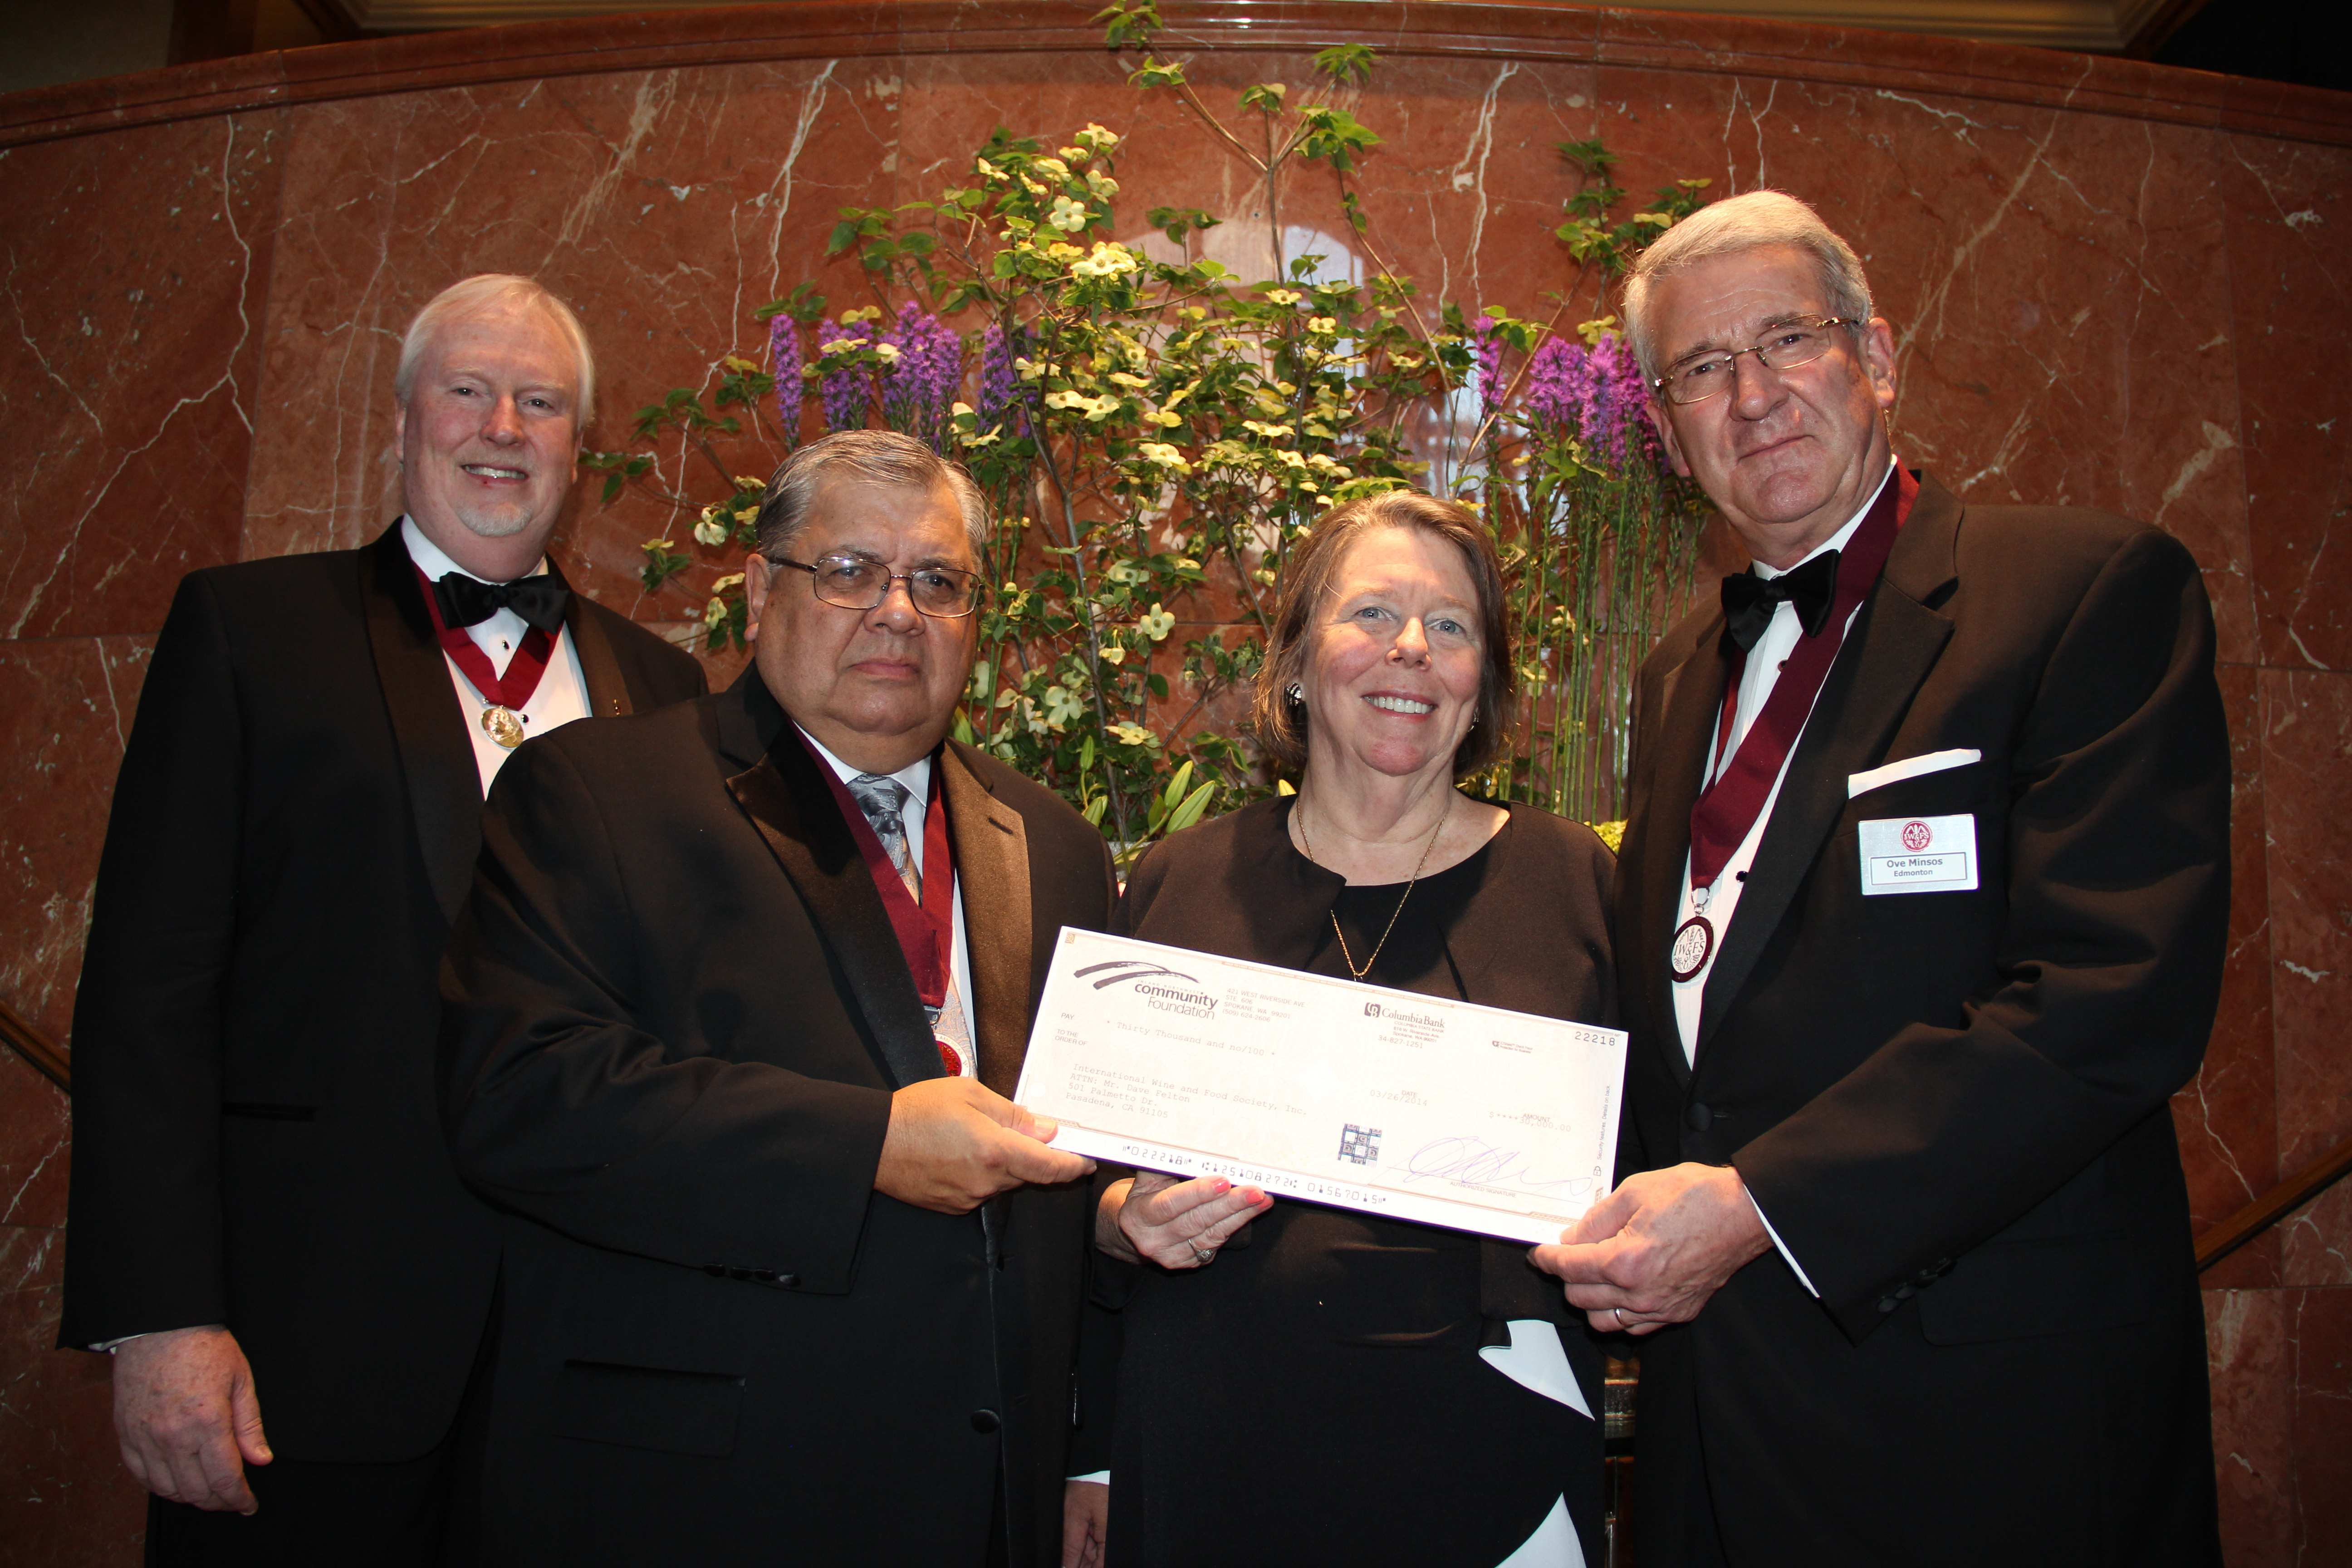 (L to R) BGA Chariman David R. Felton, Treasurer Dwight Catherwood, Publications Chair Cathy Kuhlman, Scholarship Chair Ove Minsos.